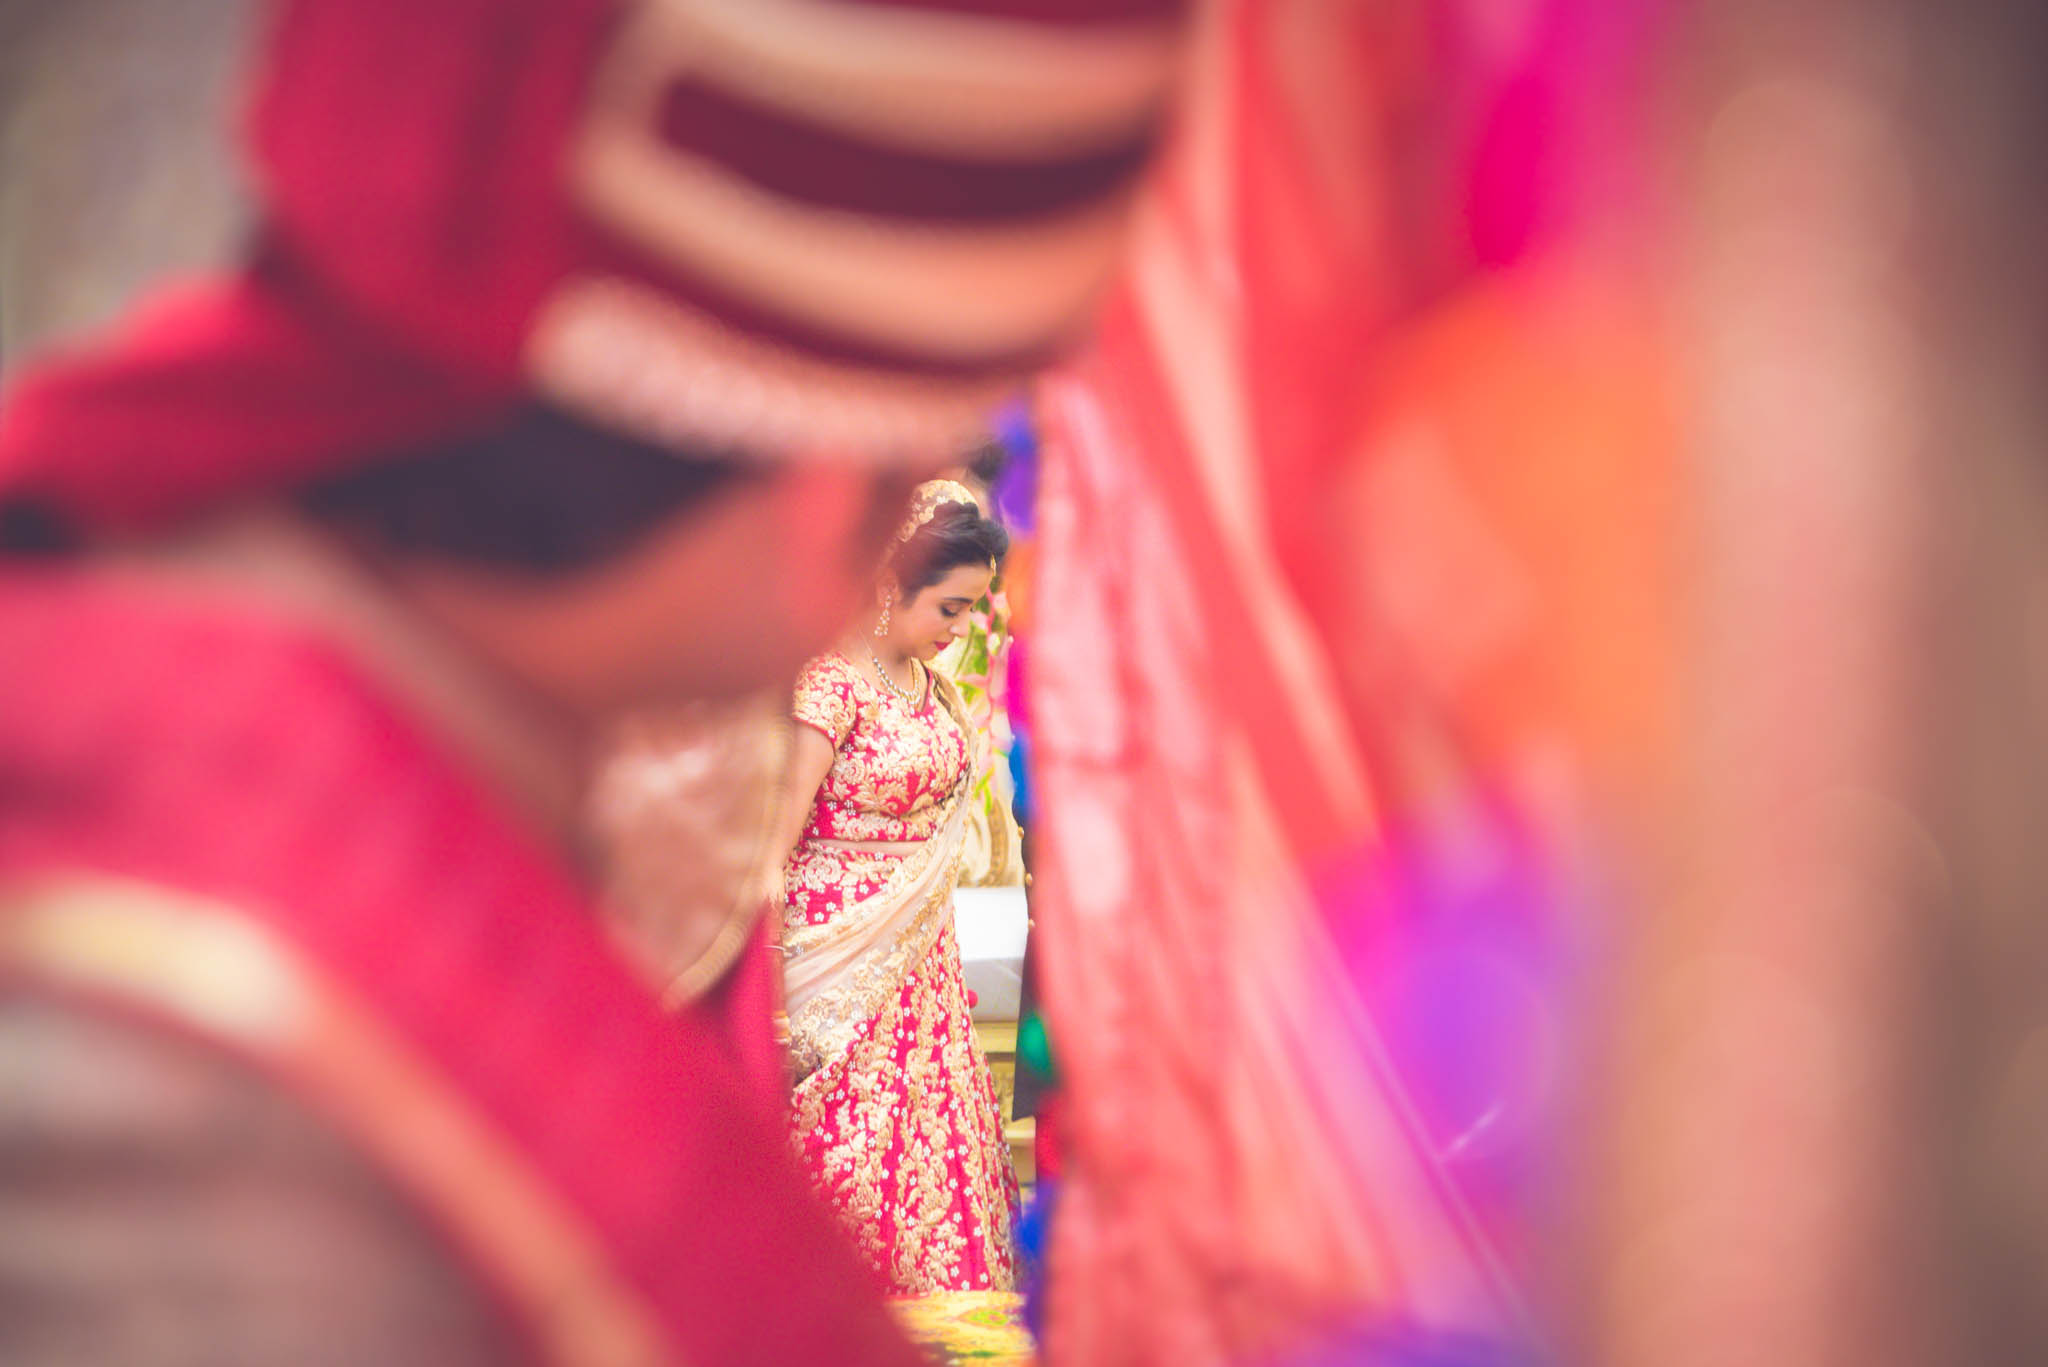 mumbai-candid-photography-wedding-whatknot-kamal-amrohi-studios-38